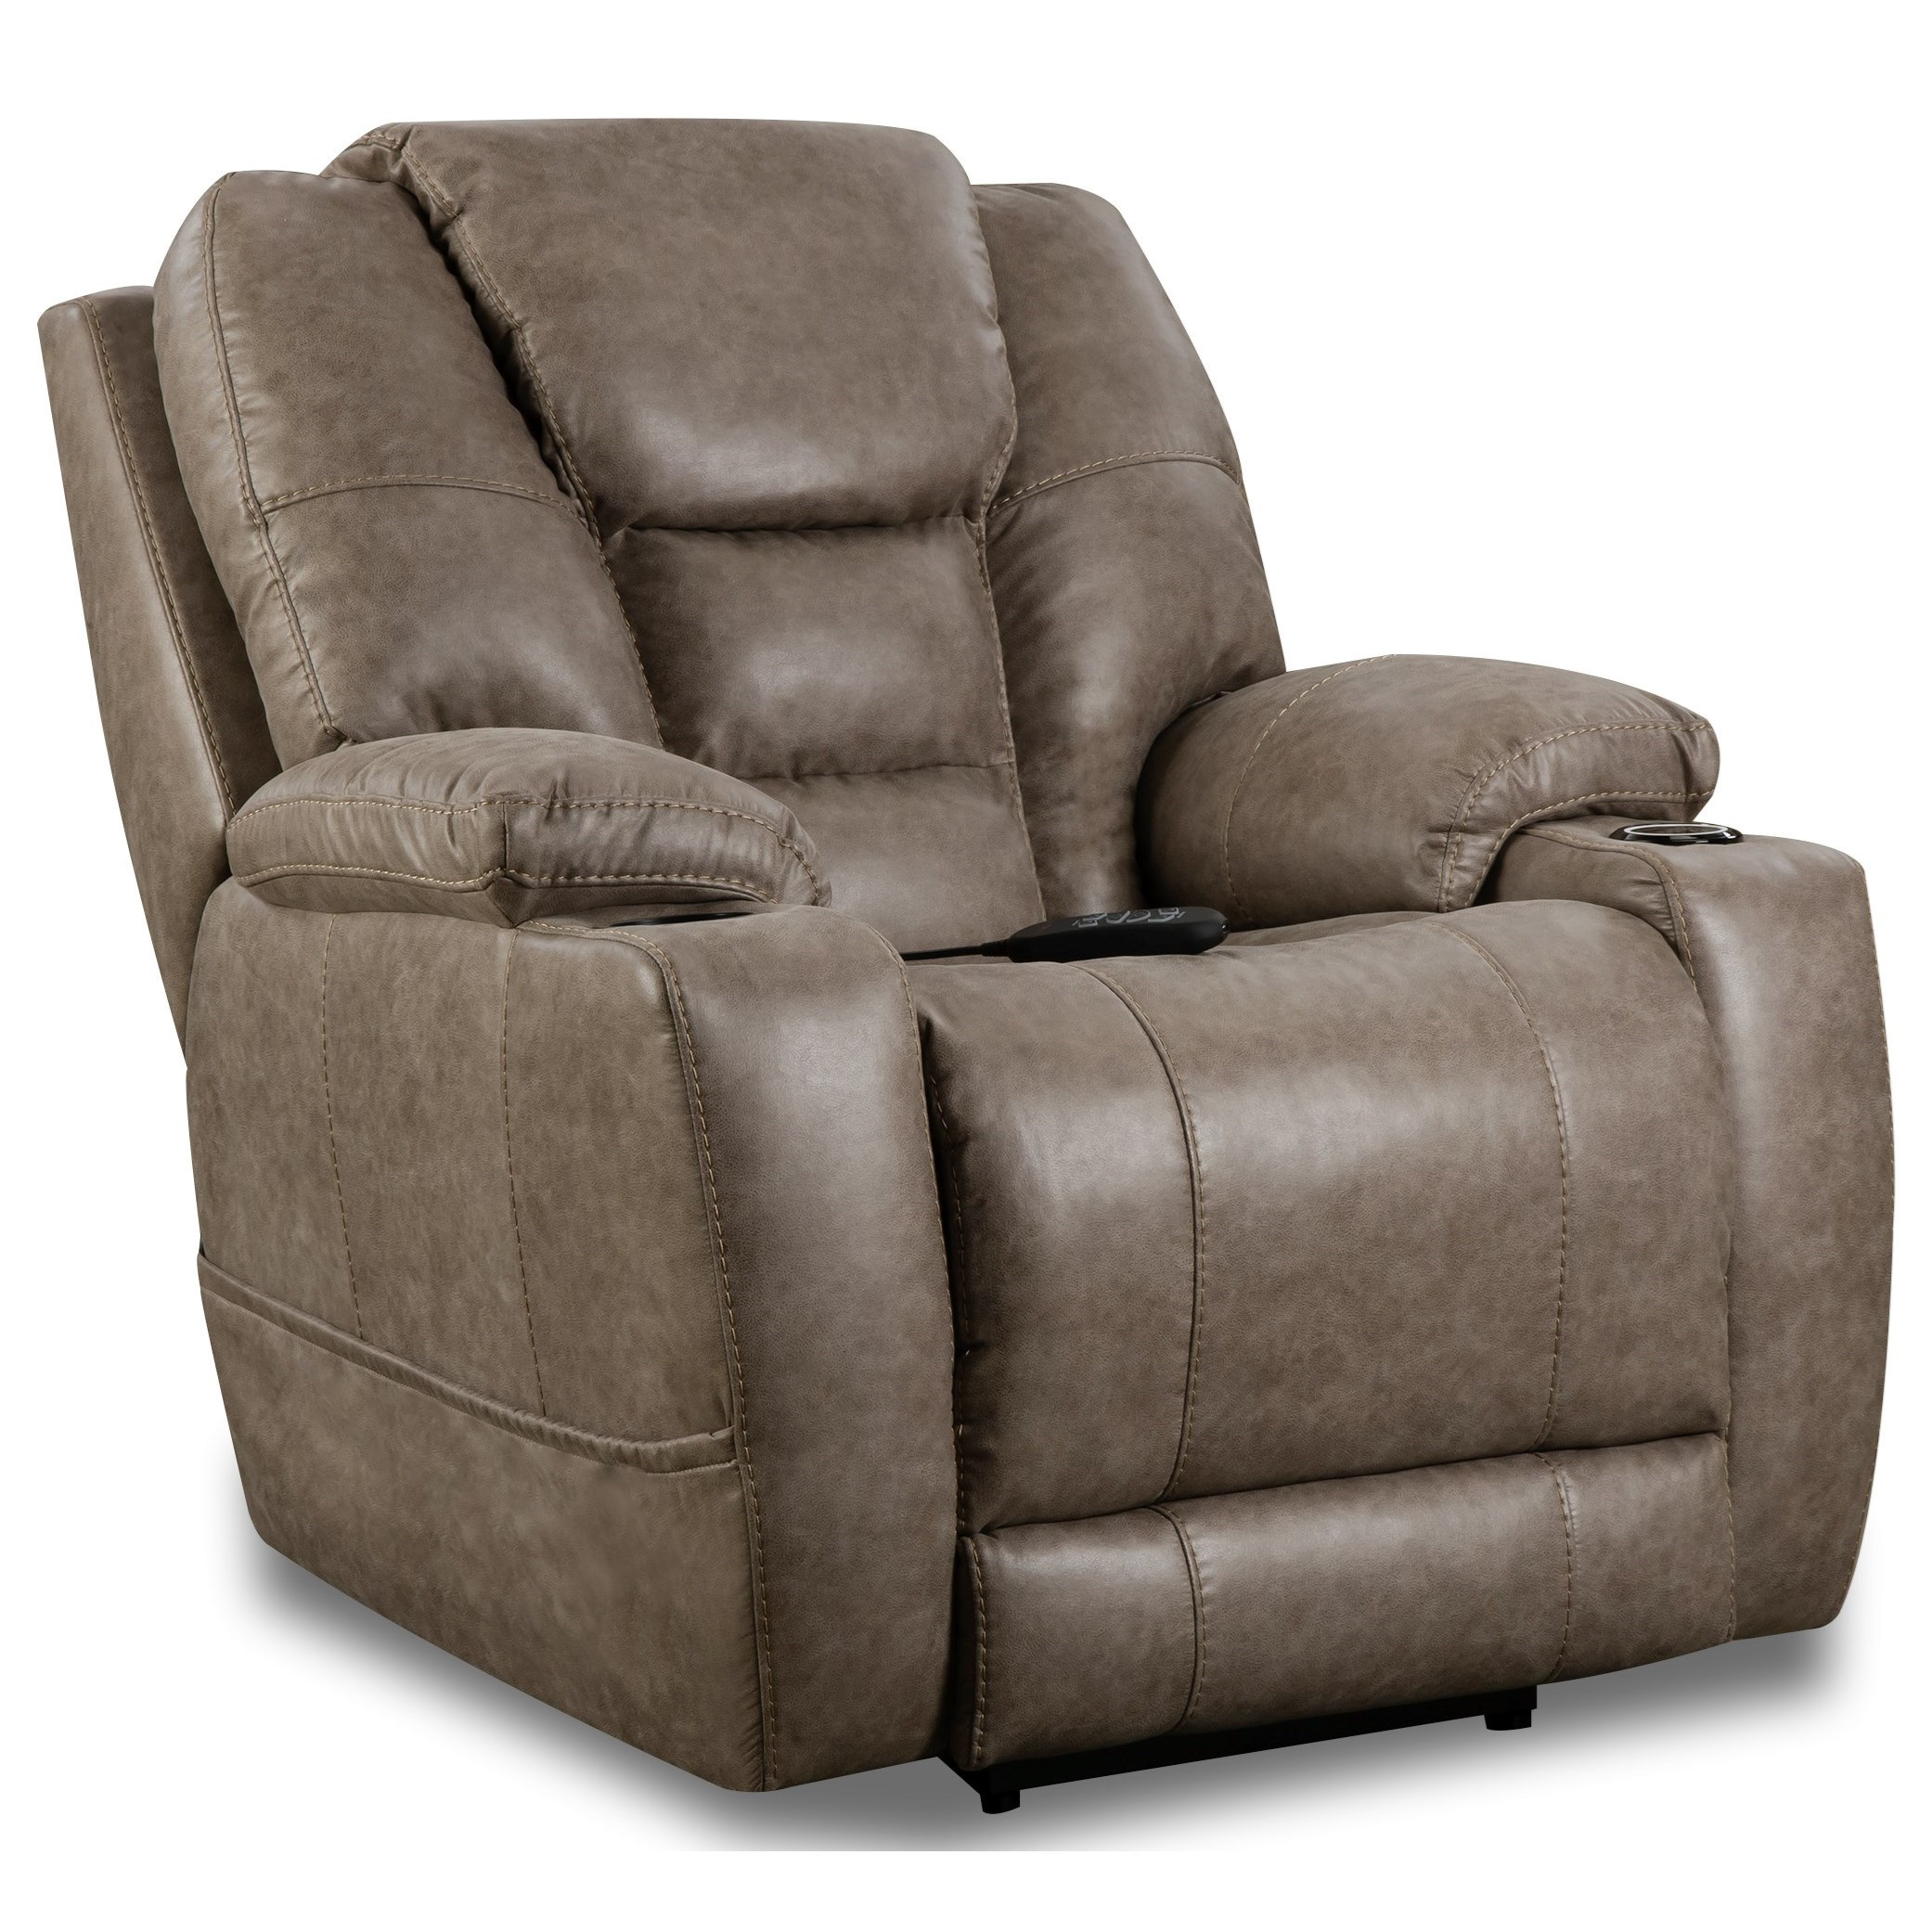 Discovery Power Recliner by HomeStretch at Standard Furniture